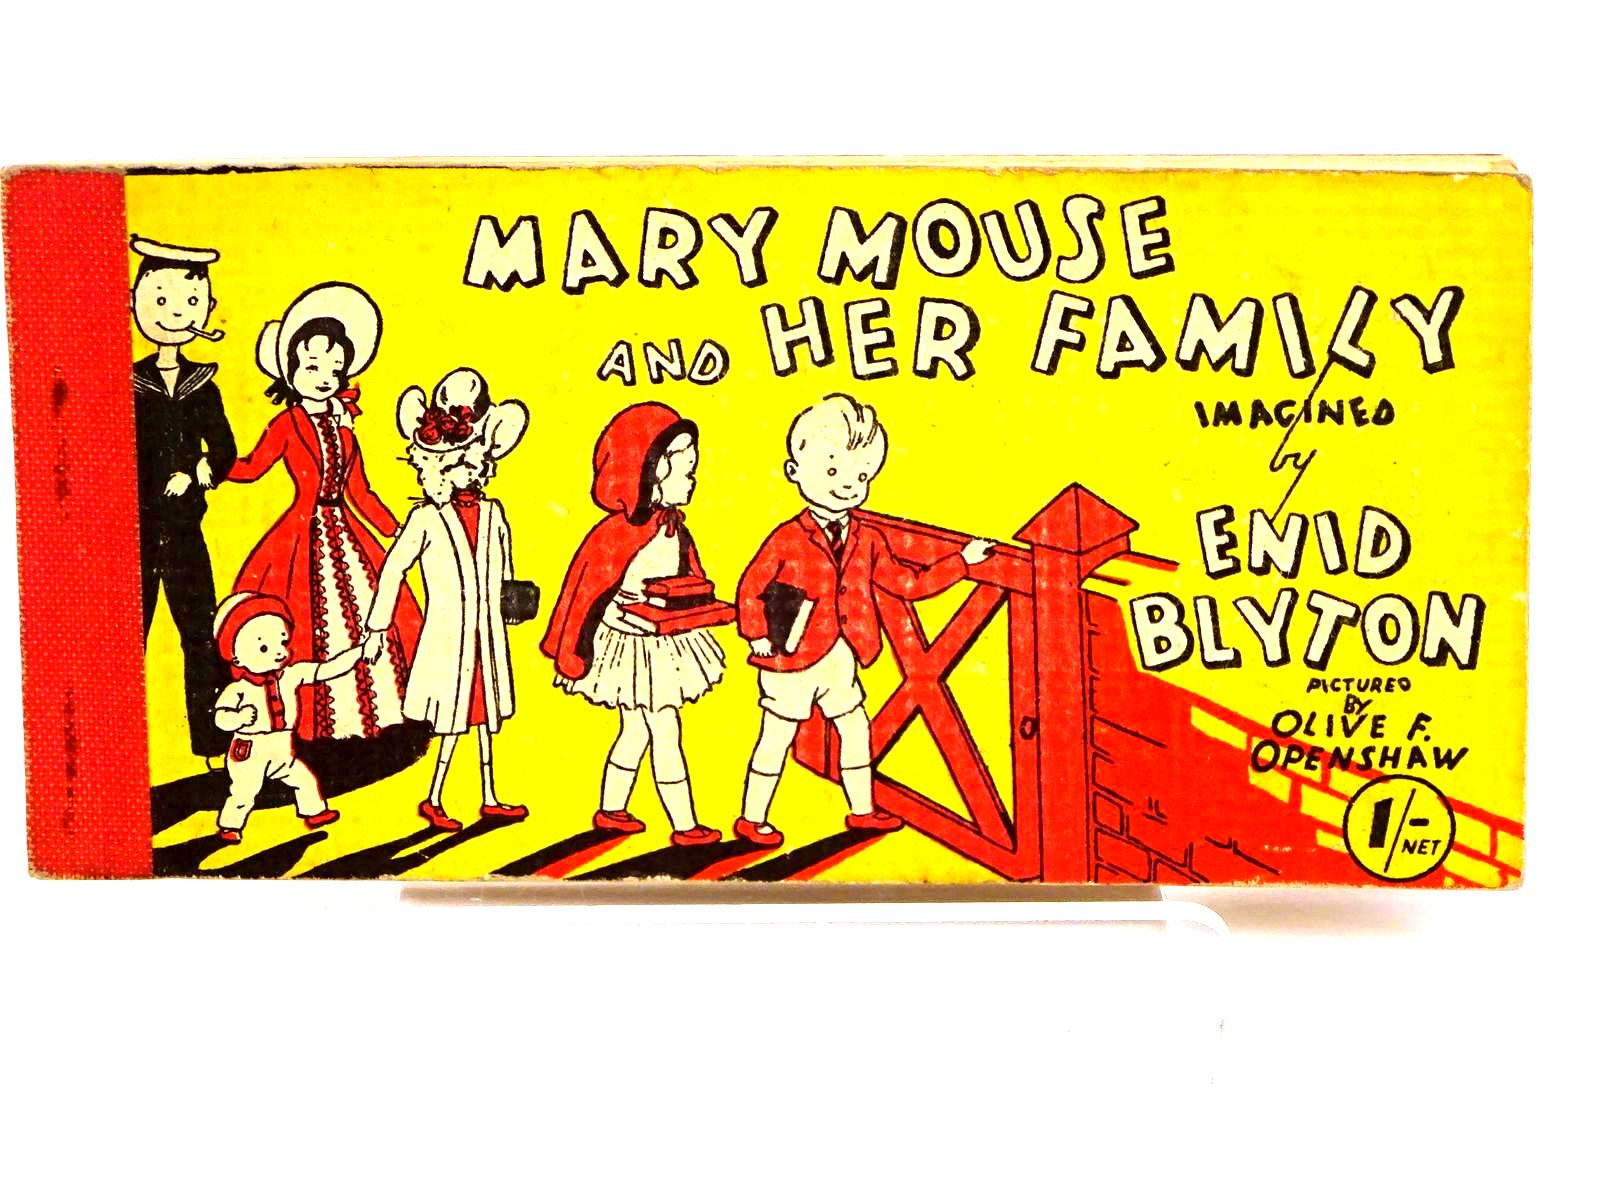 Photo of MARY MOUSE AND HER FAMILY written by Blyton, Enid illustrated by Openshaw, Olive F. published by Brockhampton Press Ltd. (STOCK CODE: 1318225)  for sale by Stella & Rose's Books